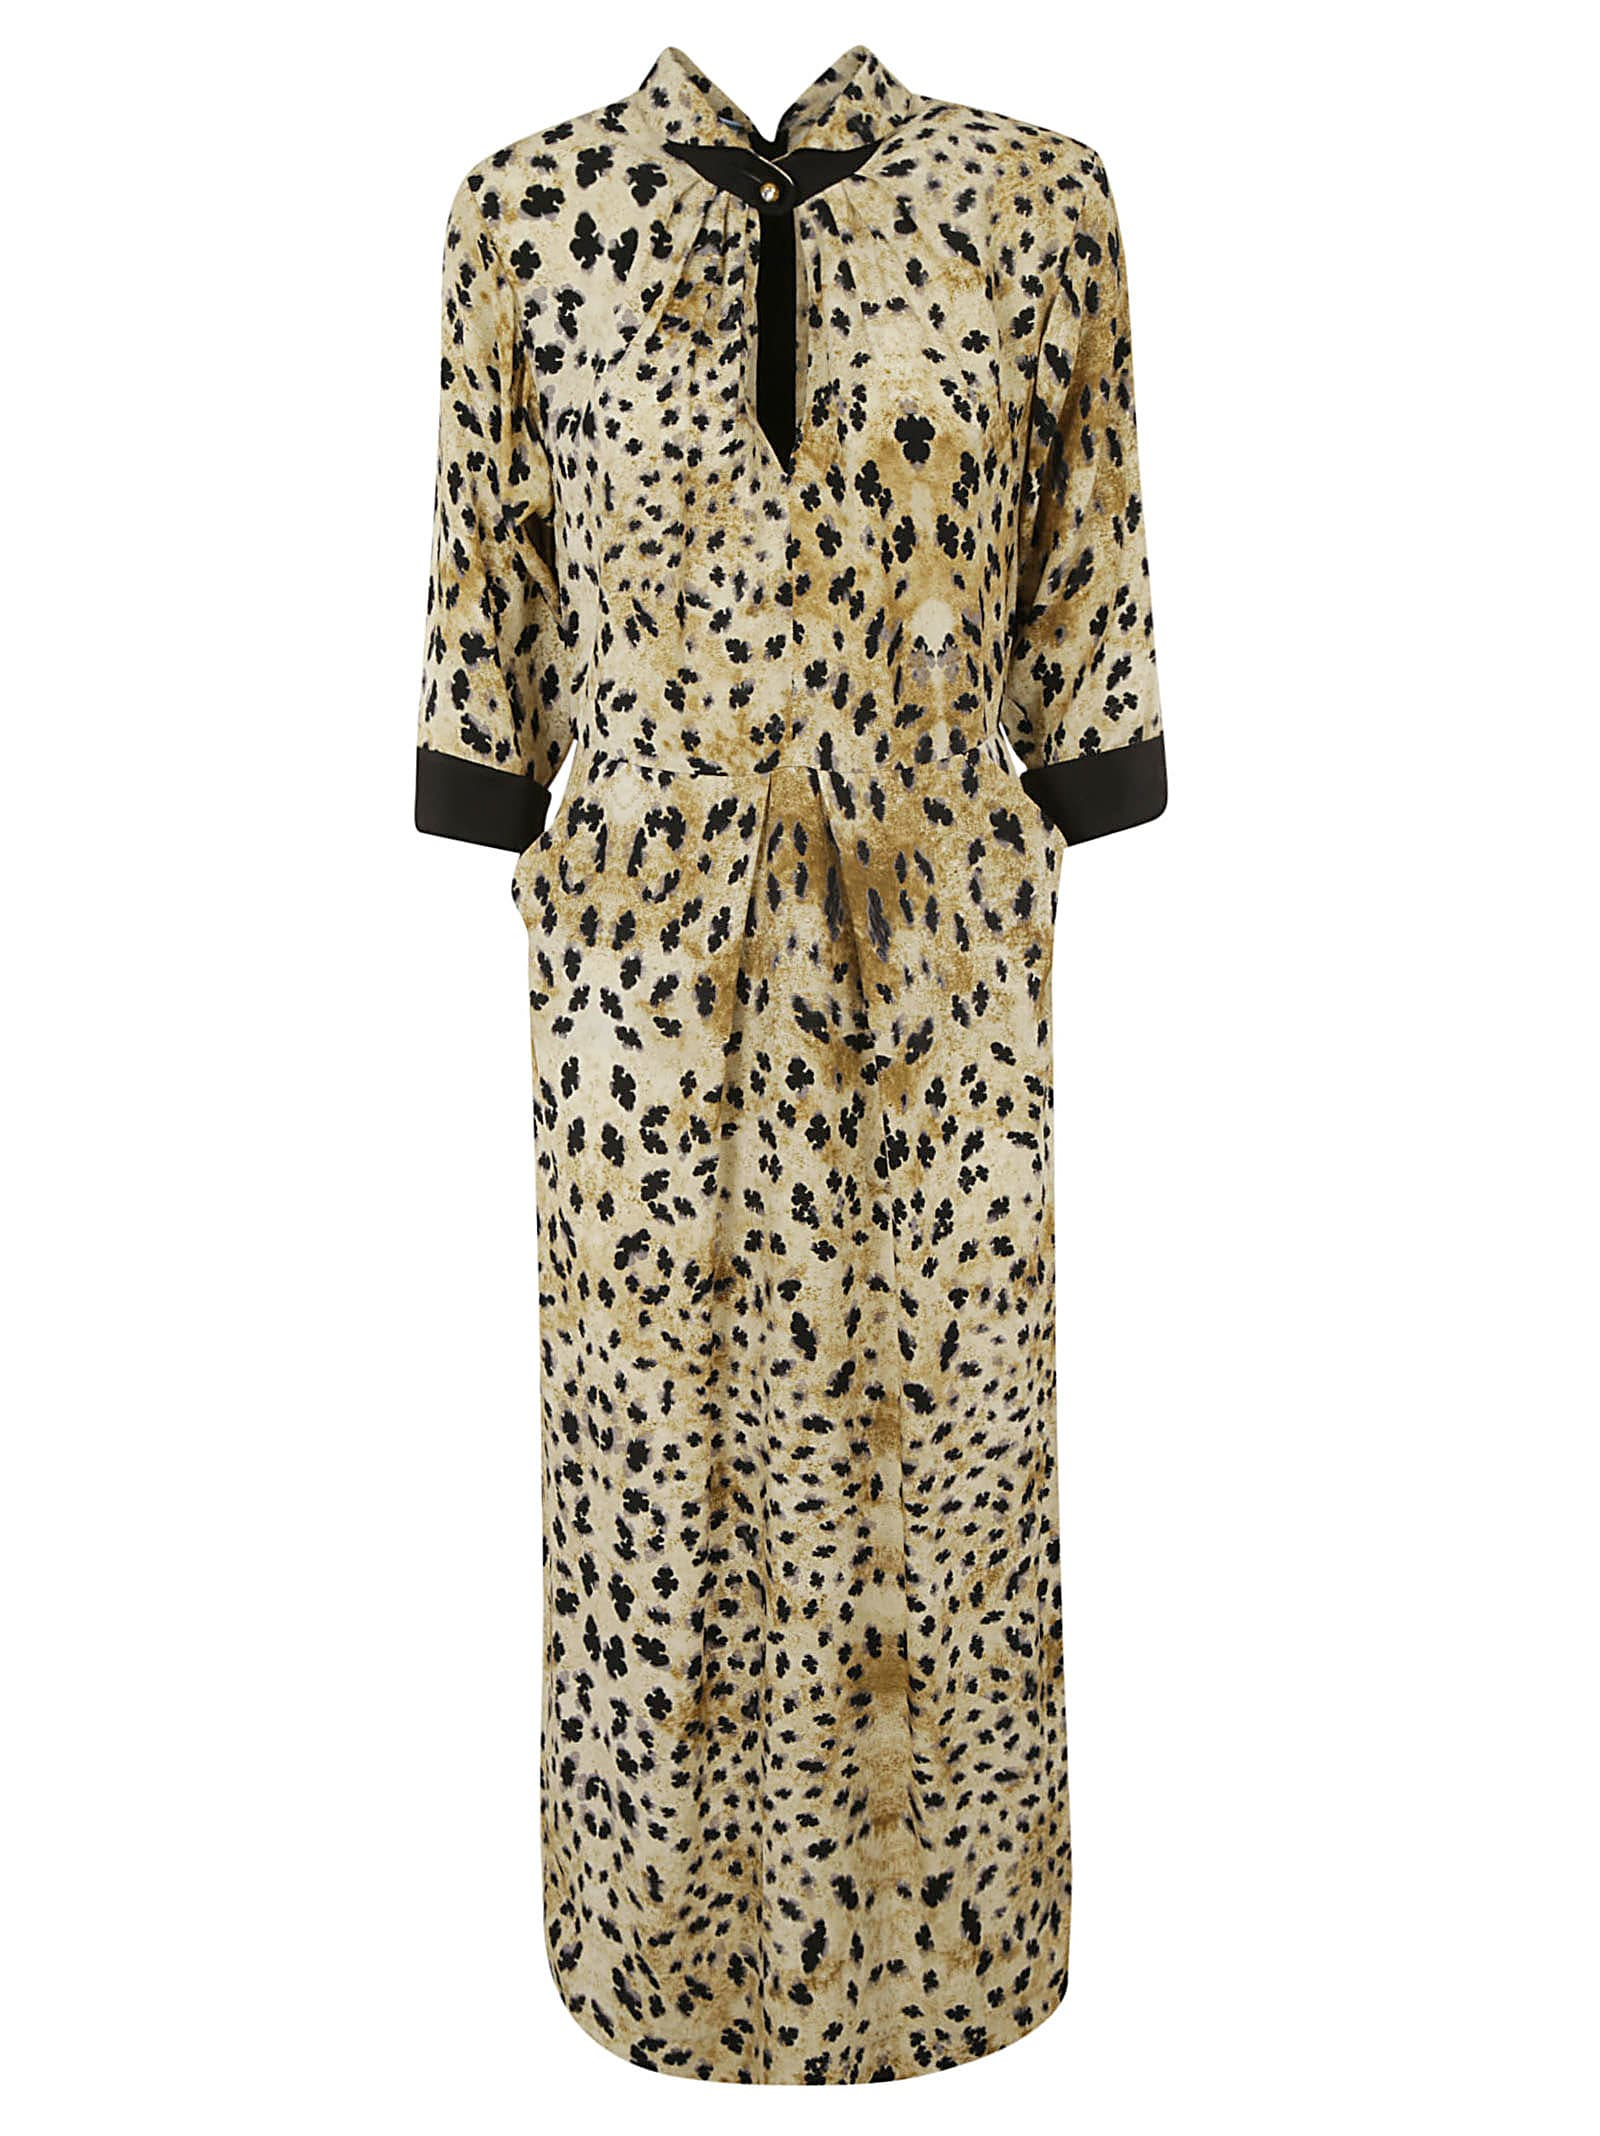 Prada Leopard Print Dress